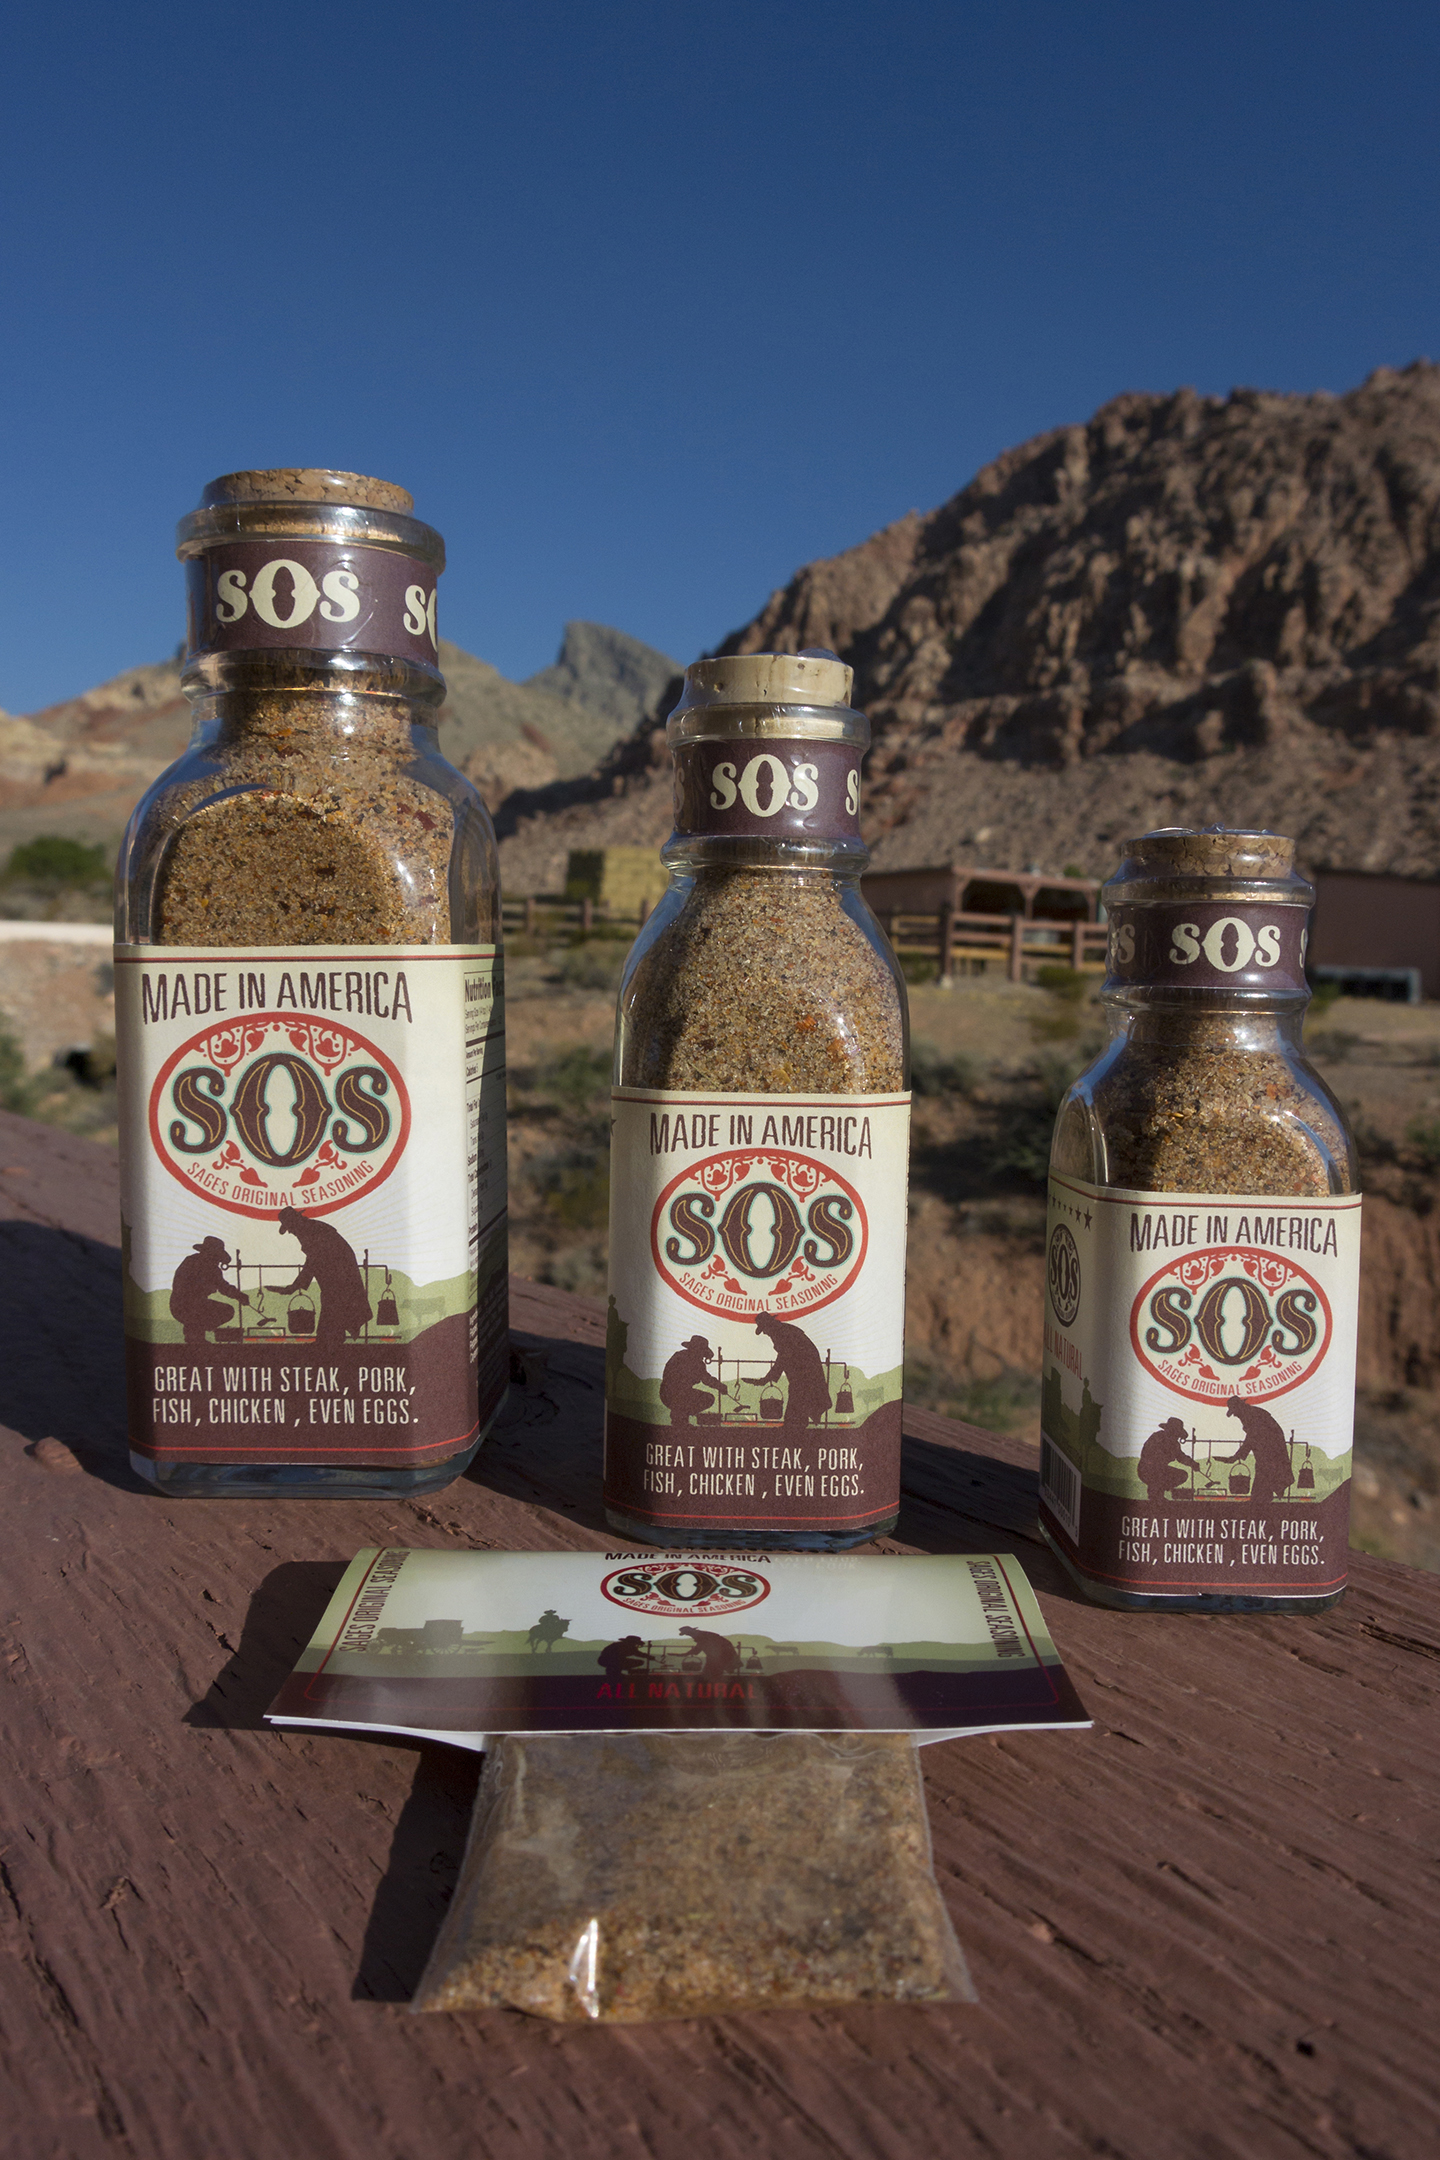 Sages Original Seasoning in 3oz, 6oz and 12 oz bottles